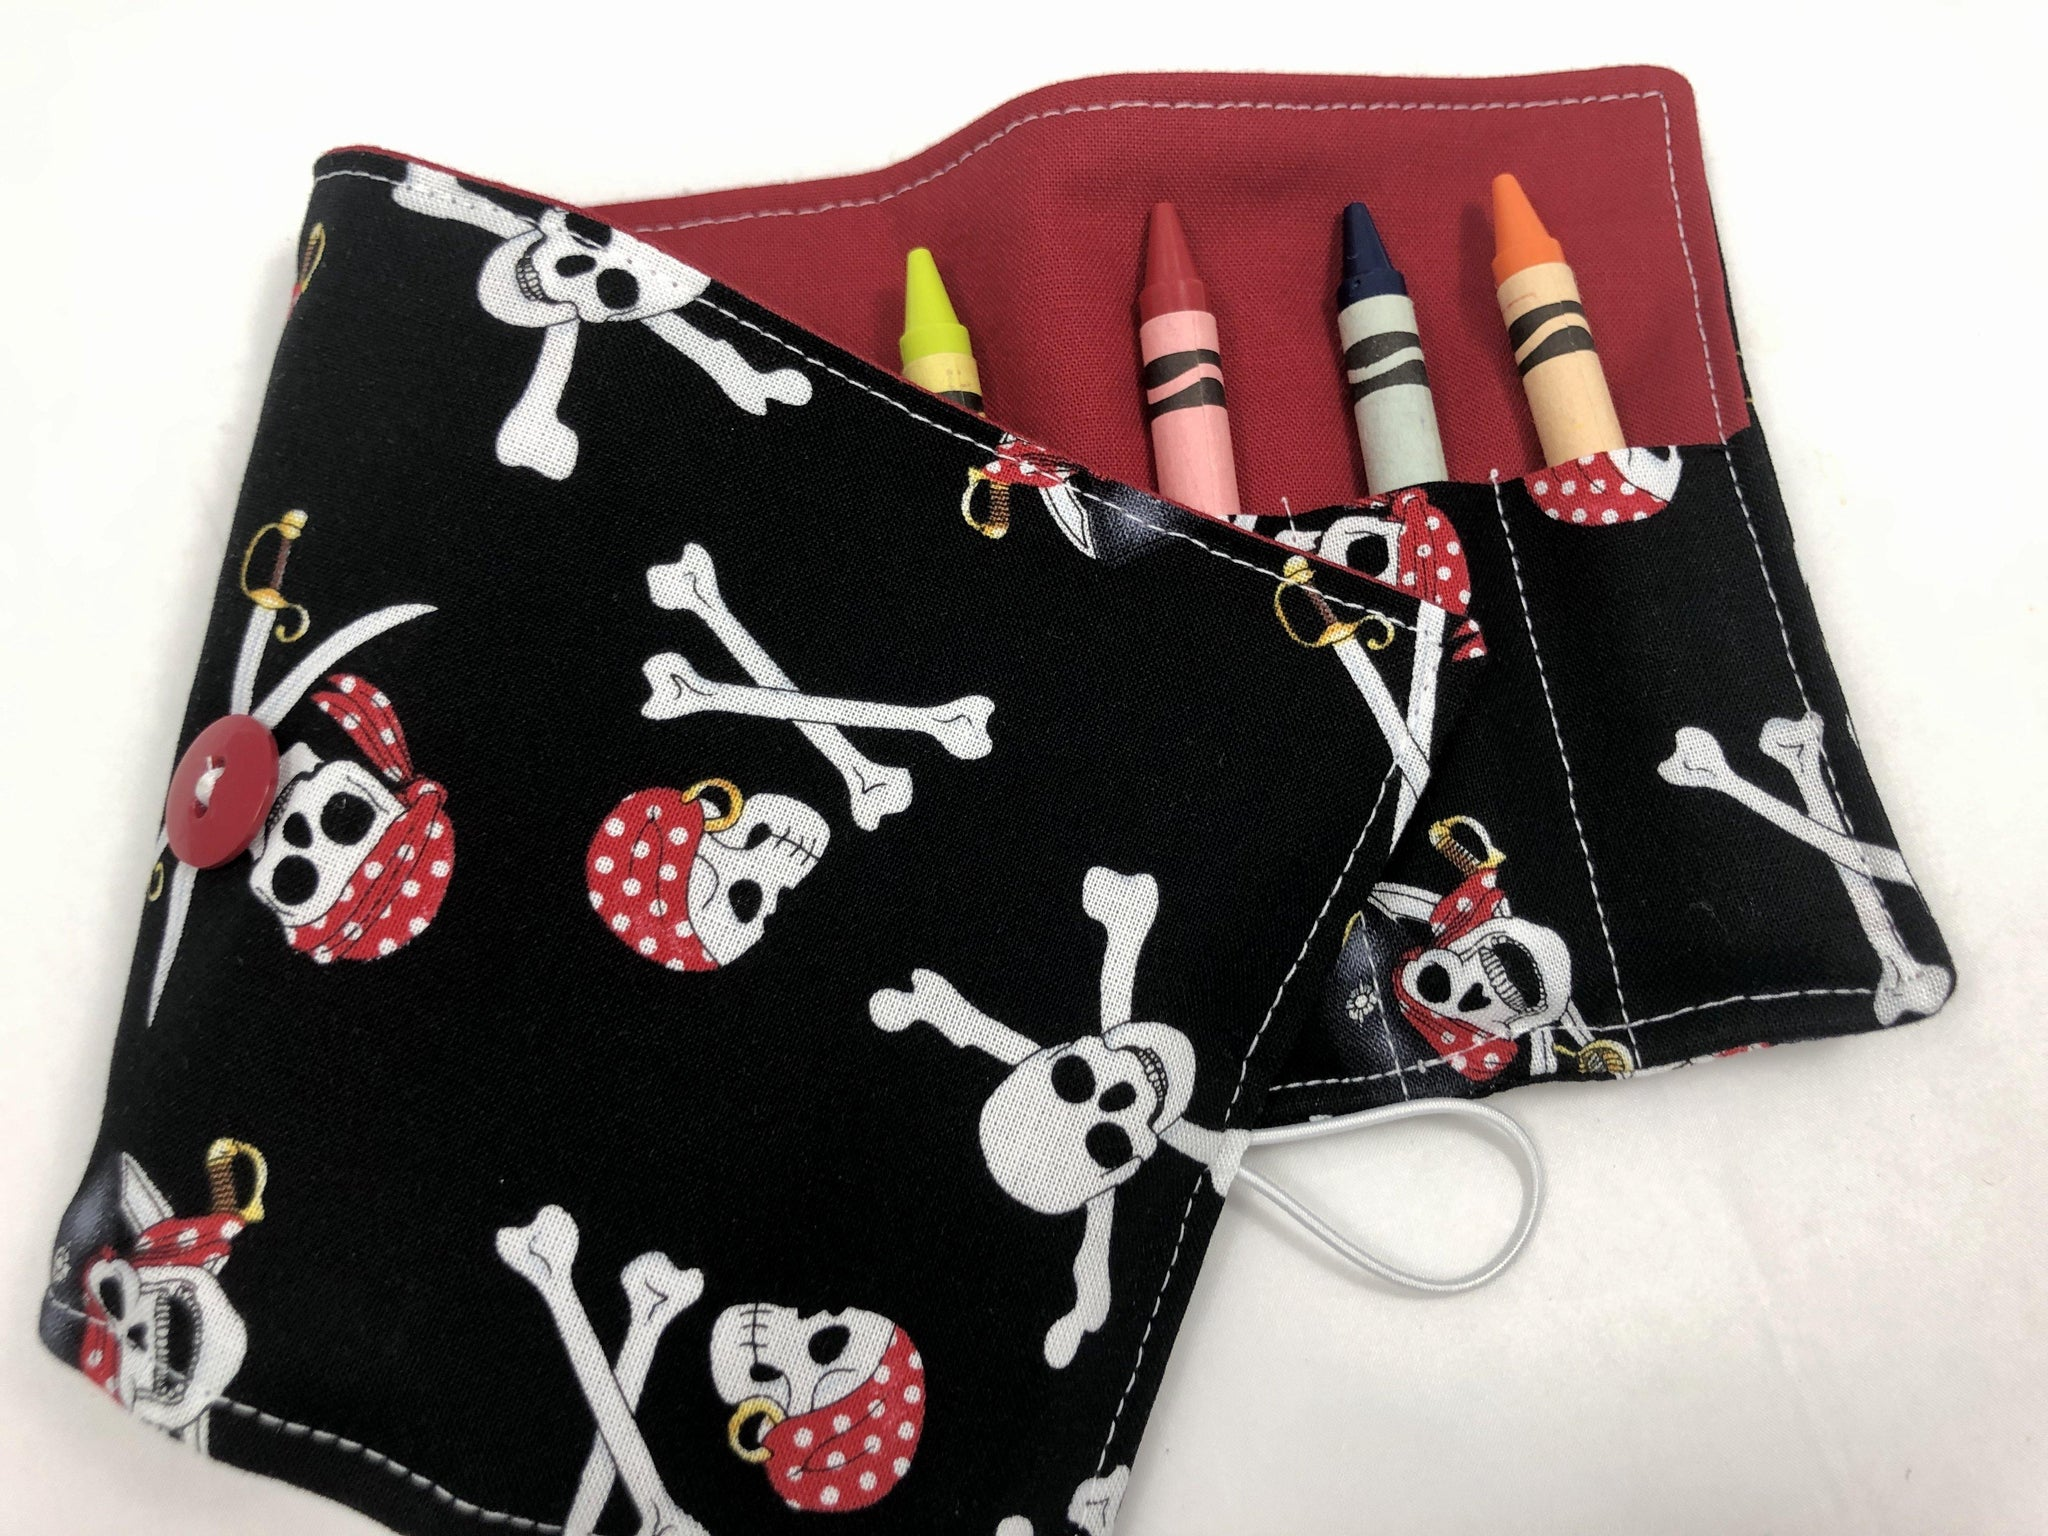 Pirate Crayon Roll, Boy's Travel Toy,  Black Crayon Case, Skull and Crossbones - EcoHip Custom Designs